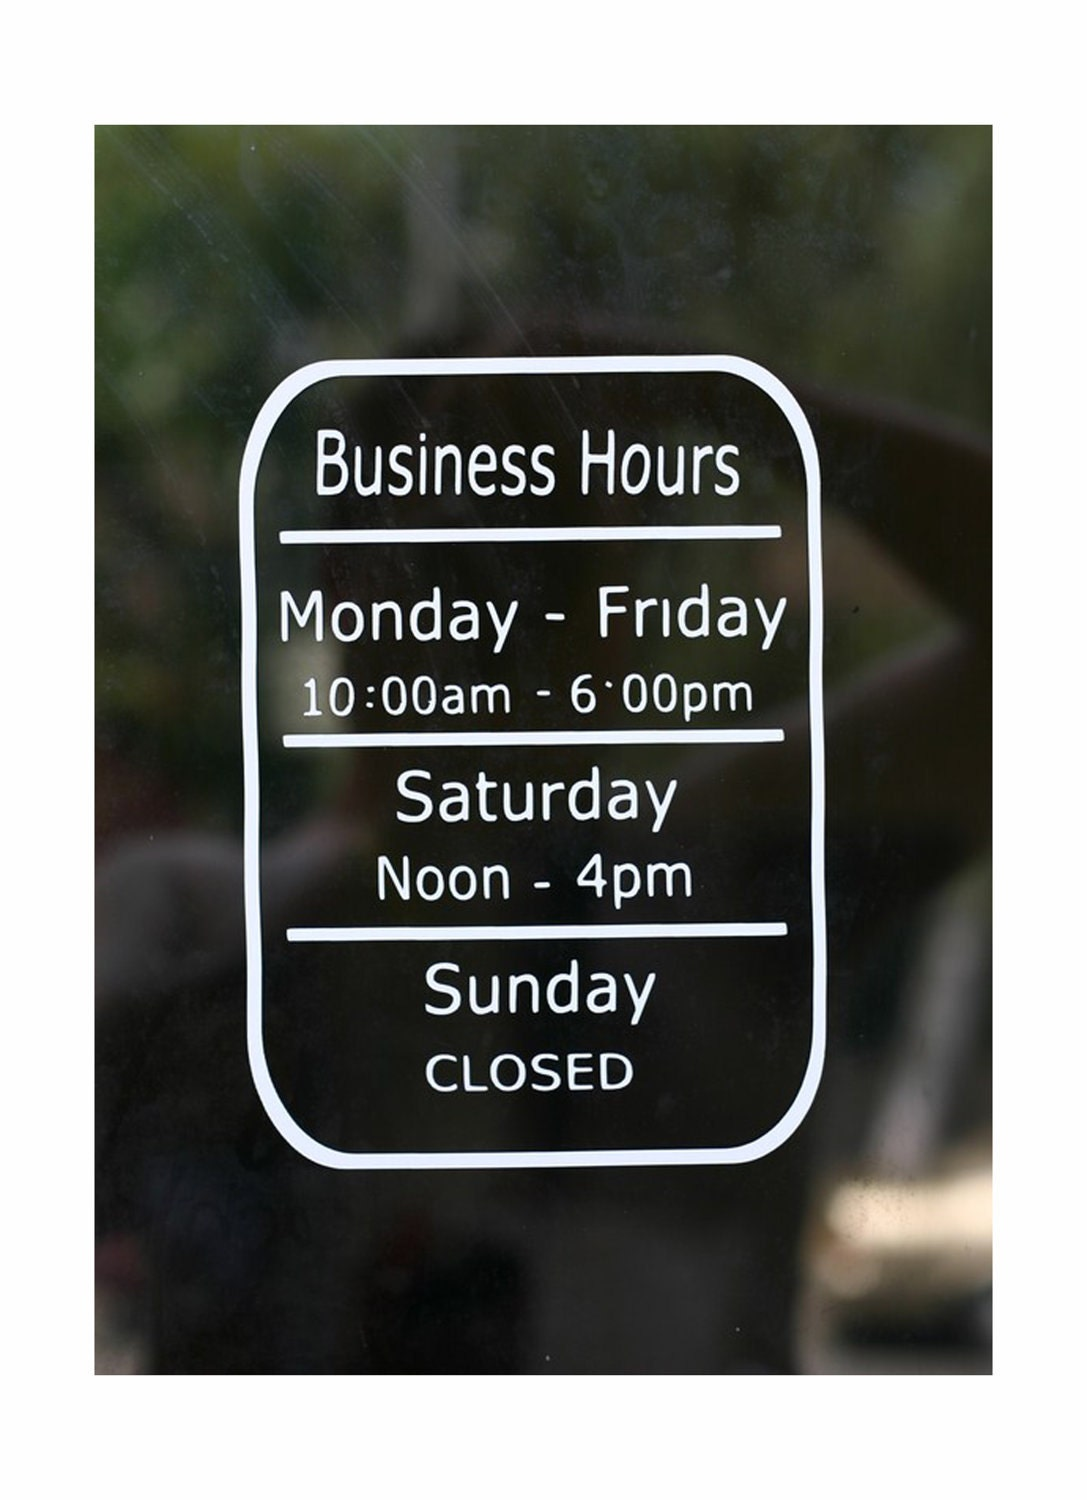 New business hours template zrom printable business hours sign template business closed sign template flashek Gallery